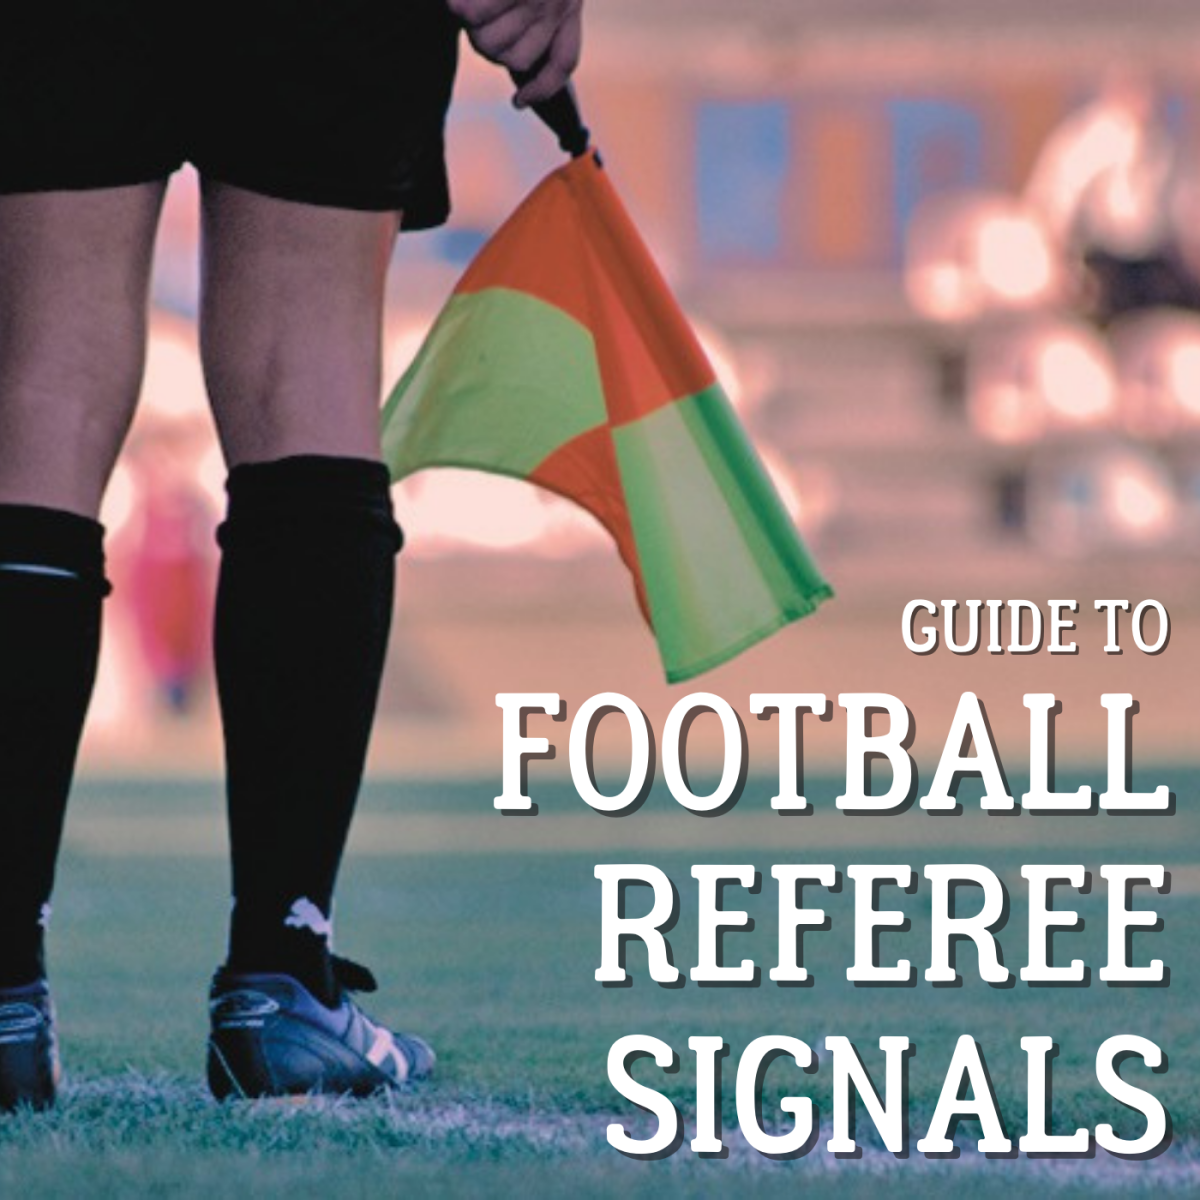 What does it mean when the ref raises one arm? How about when they touch one of their hands? Learn about referee signals in football or soccer with this illustrated guide.